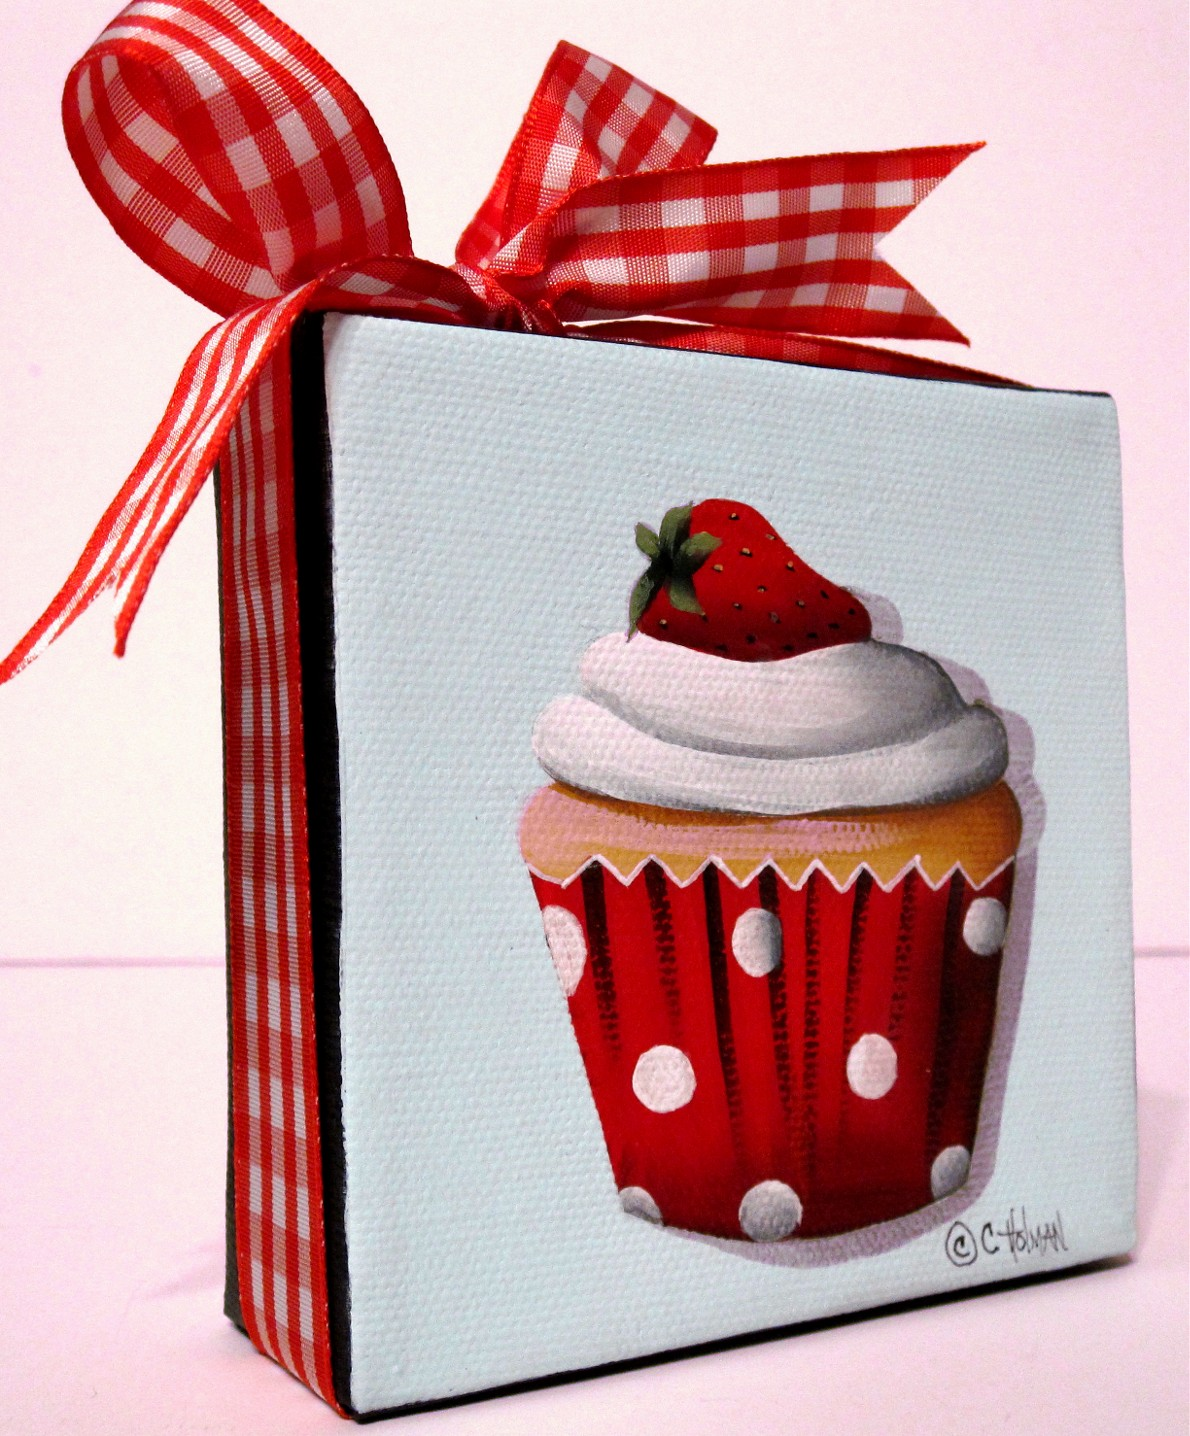 Strawberry Shortcake Cupcake Painting and Evening in Madrid